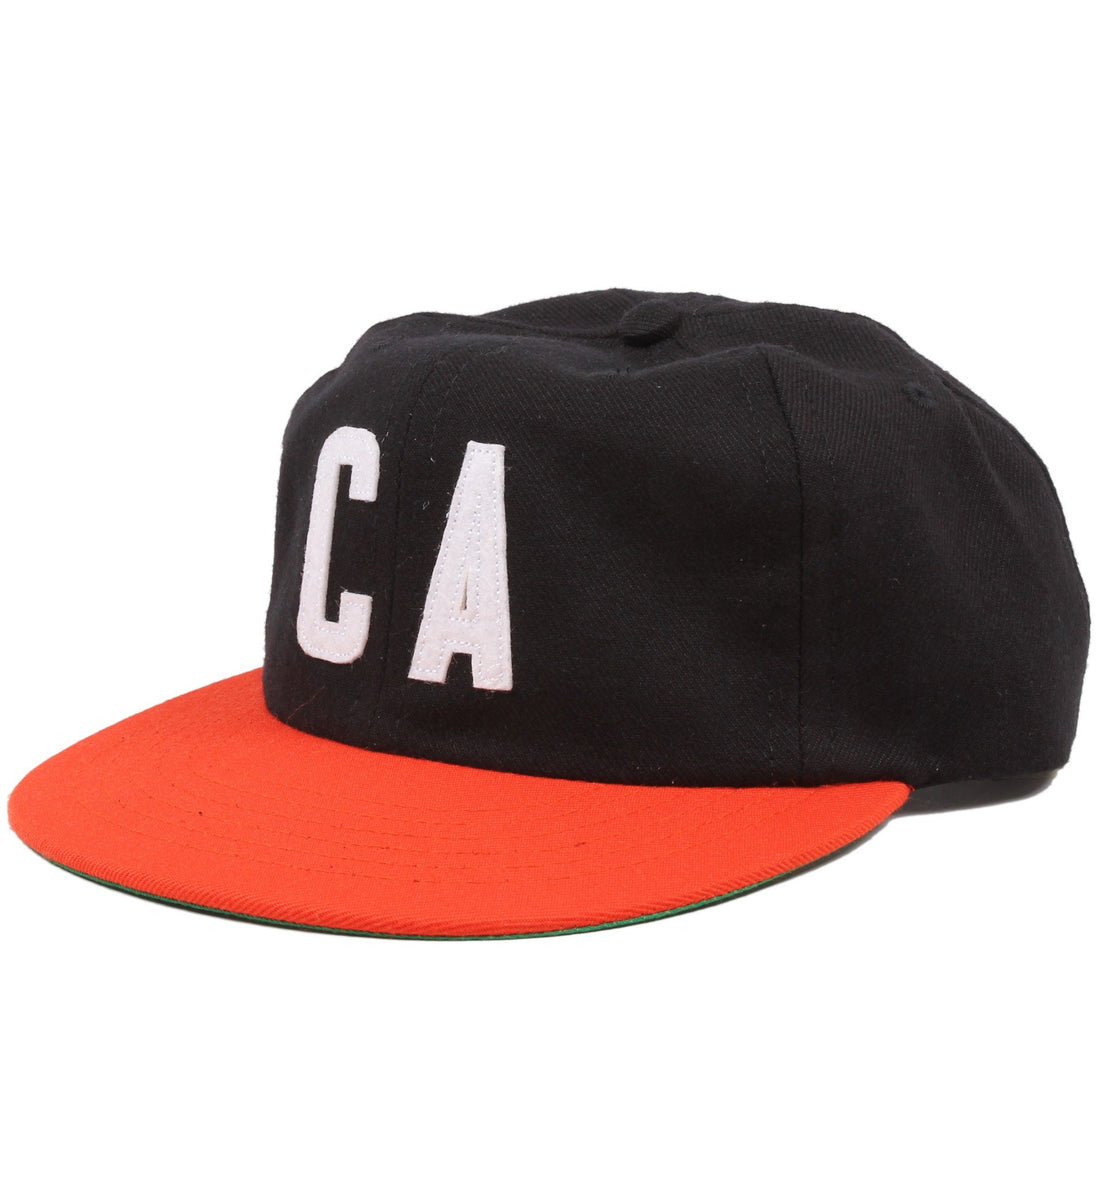 Best Coast 3 Hat - Headwear - Iron and Resin